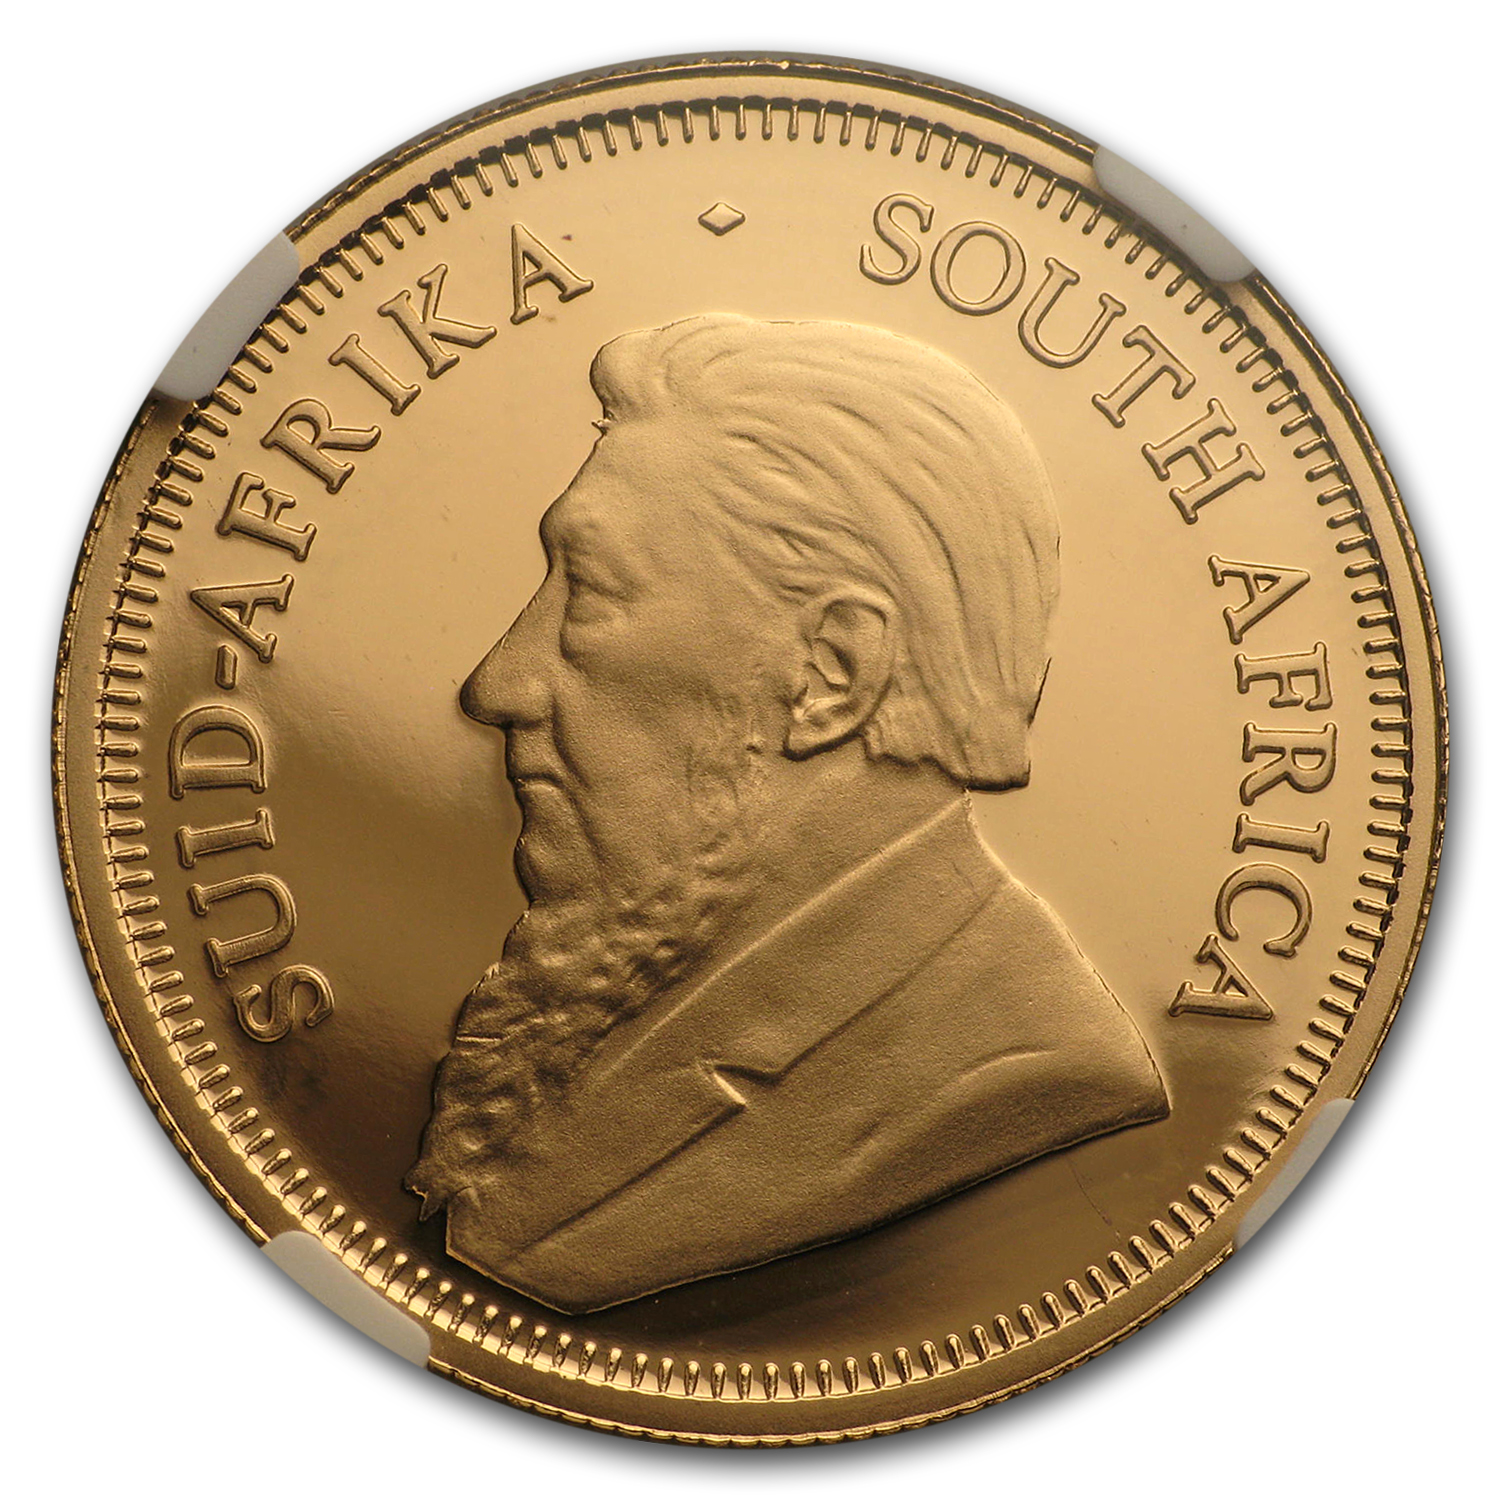 2015 South Africa 1/4 oz Proof Gold Krugerrand PF-69 NGC